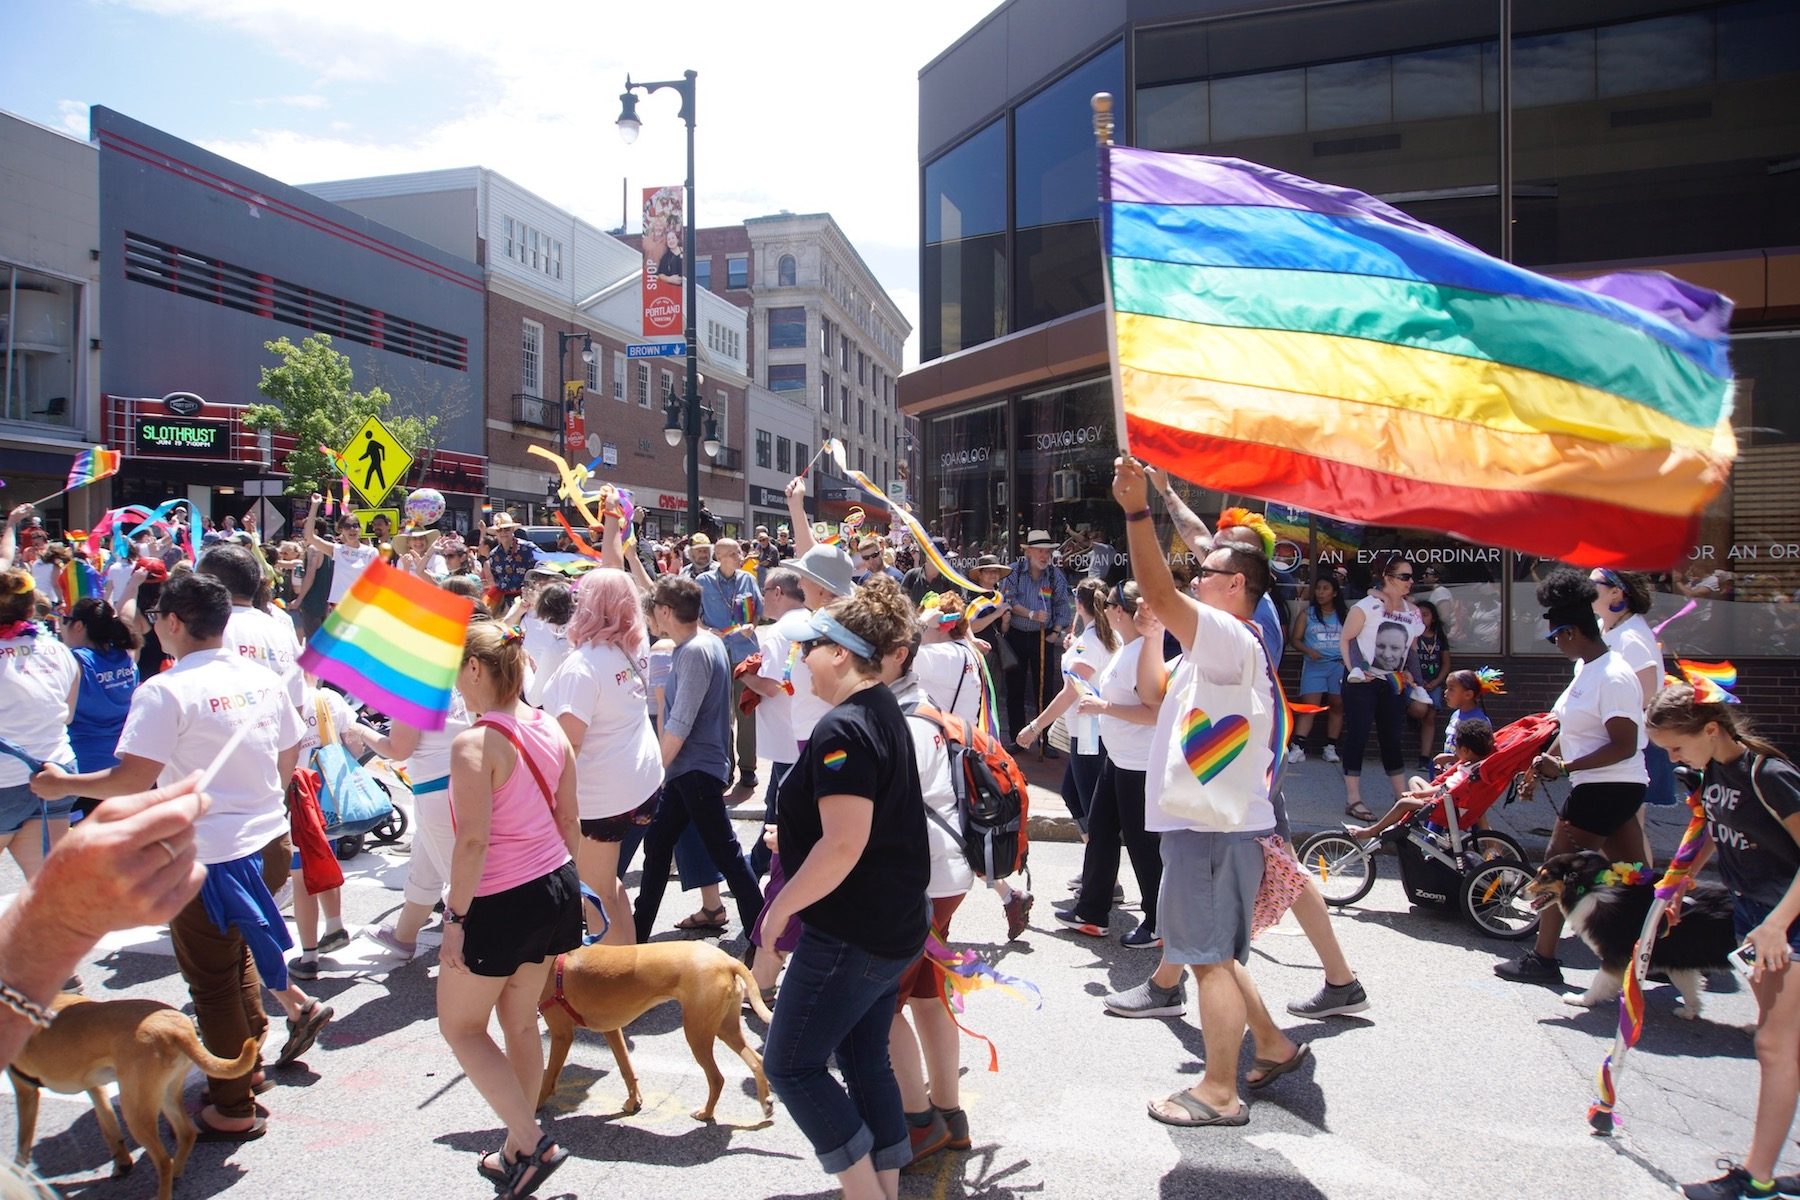 Large group of people on city street carrying pride/rainbow flags and celebrating.